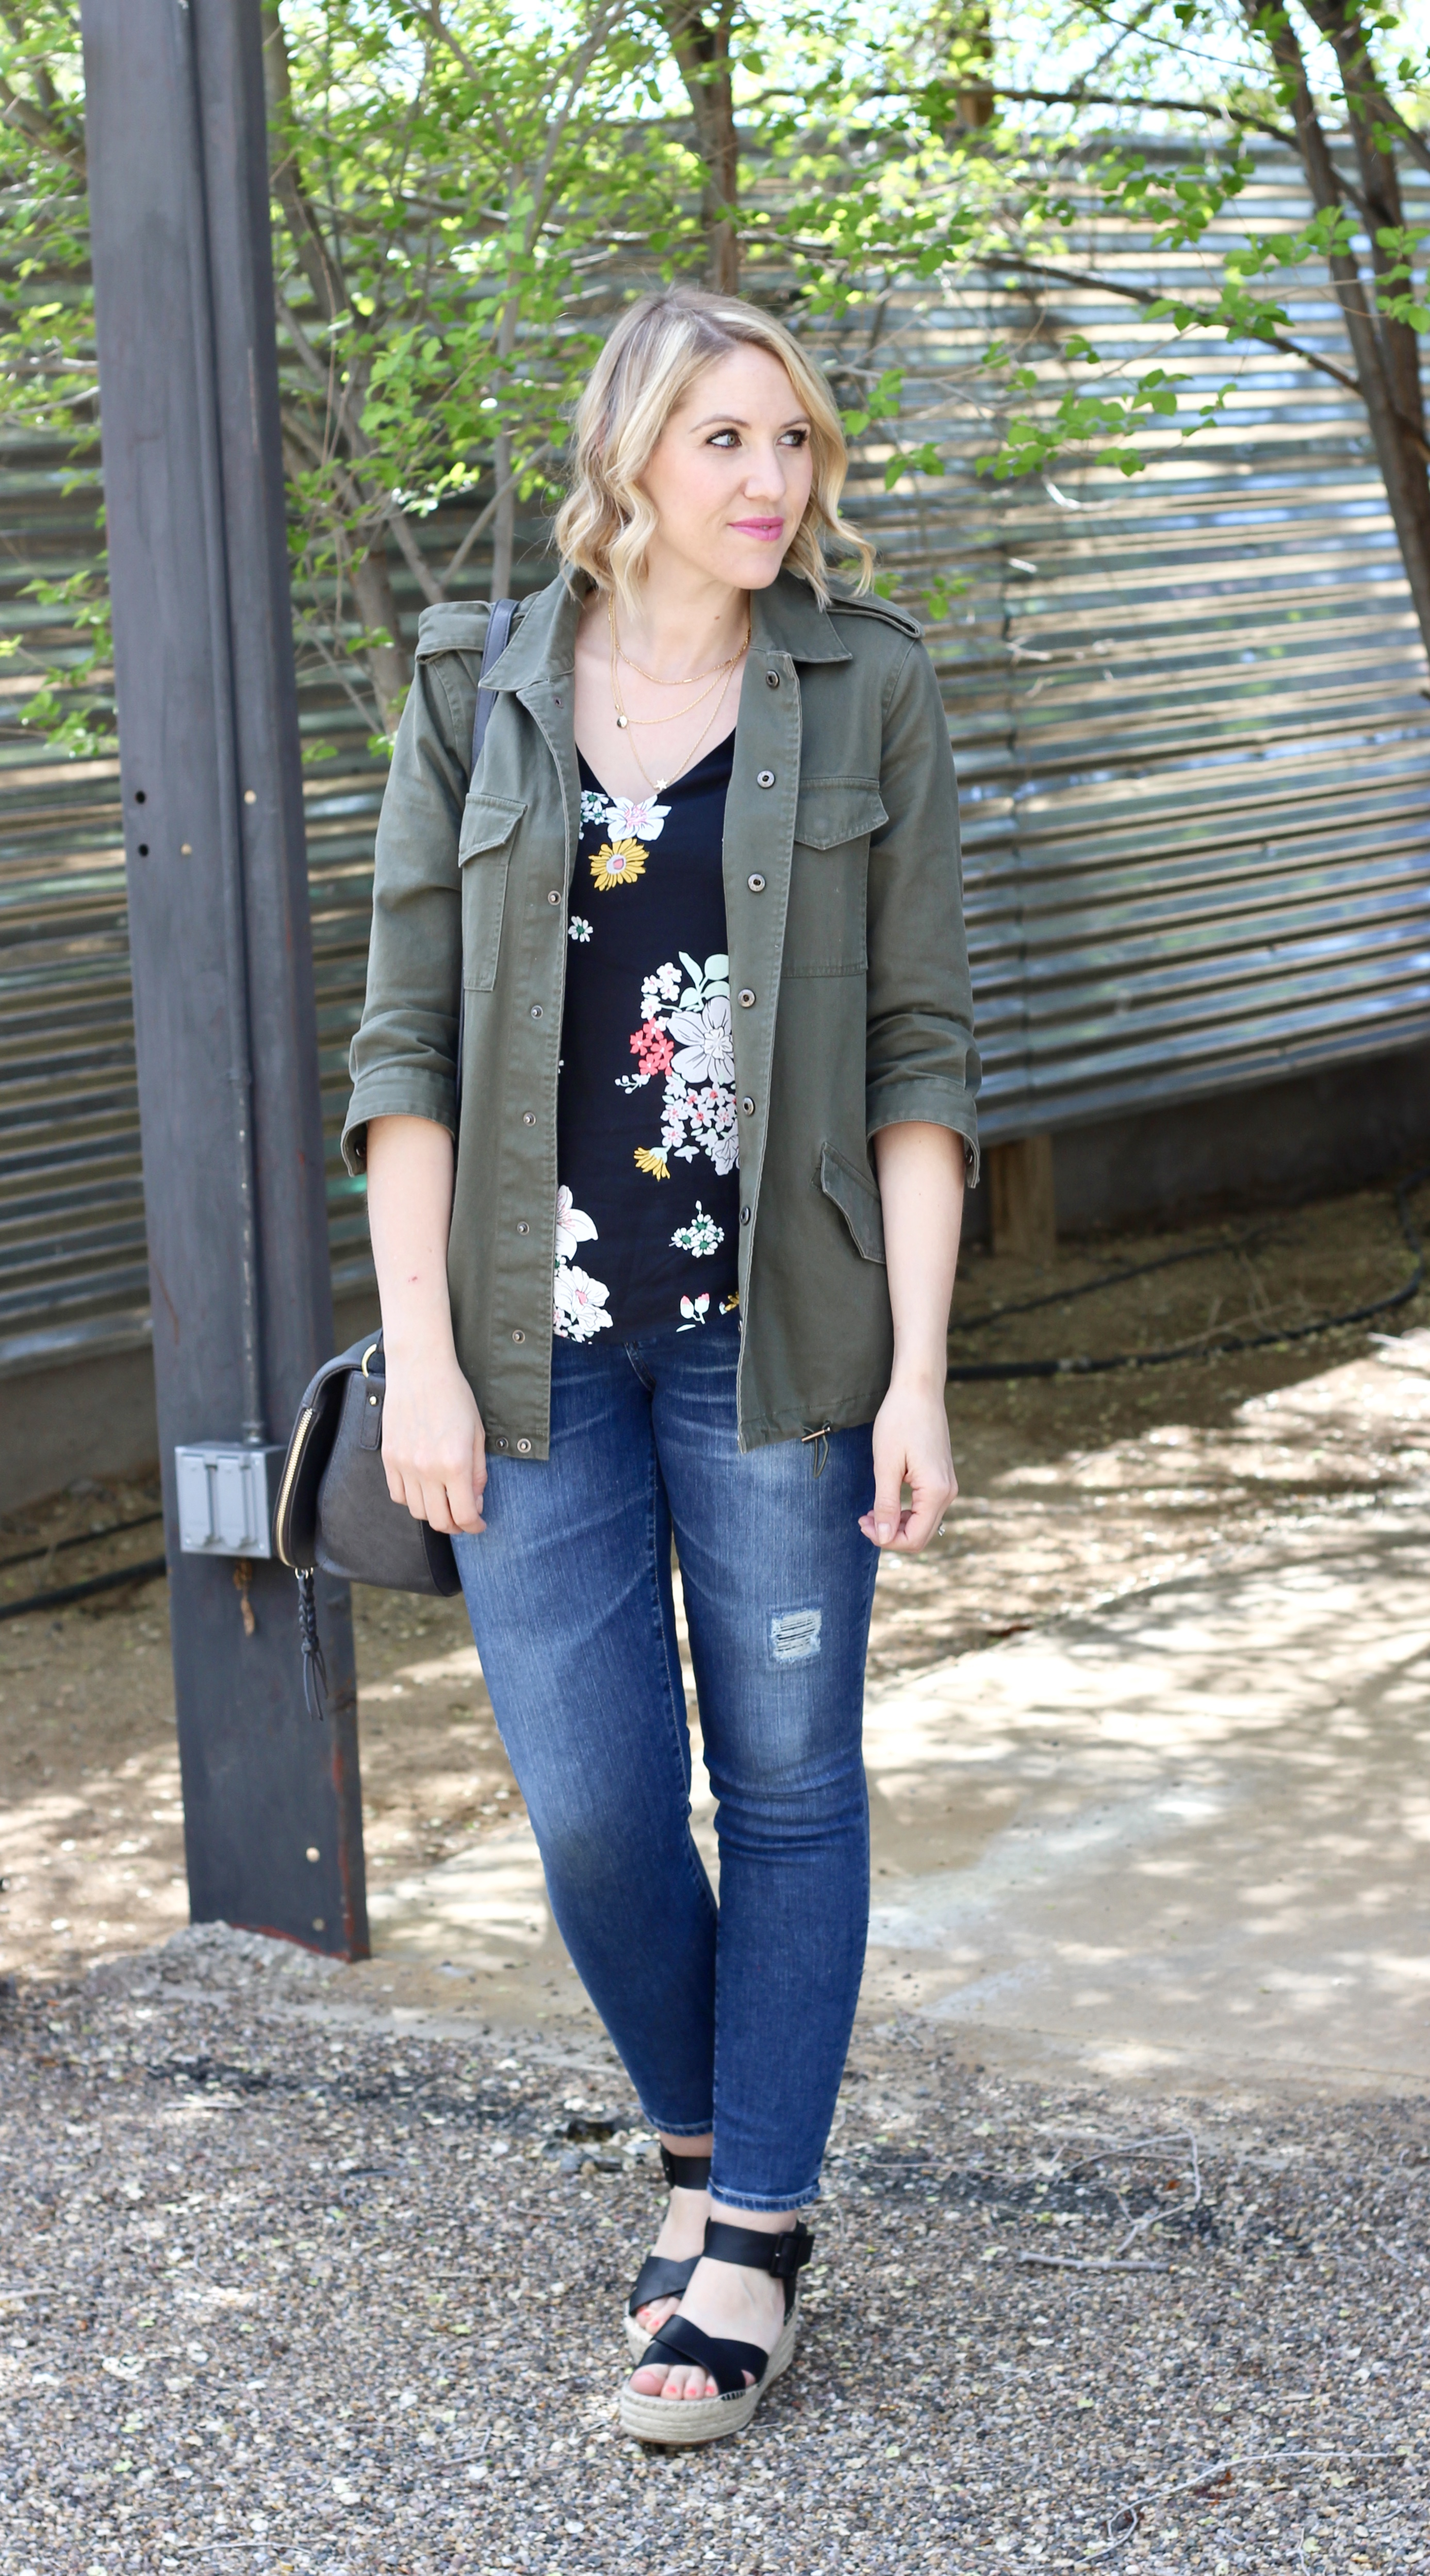 sole-society-flatform-sandals-spring-outfit